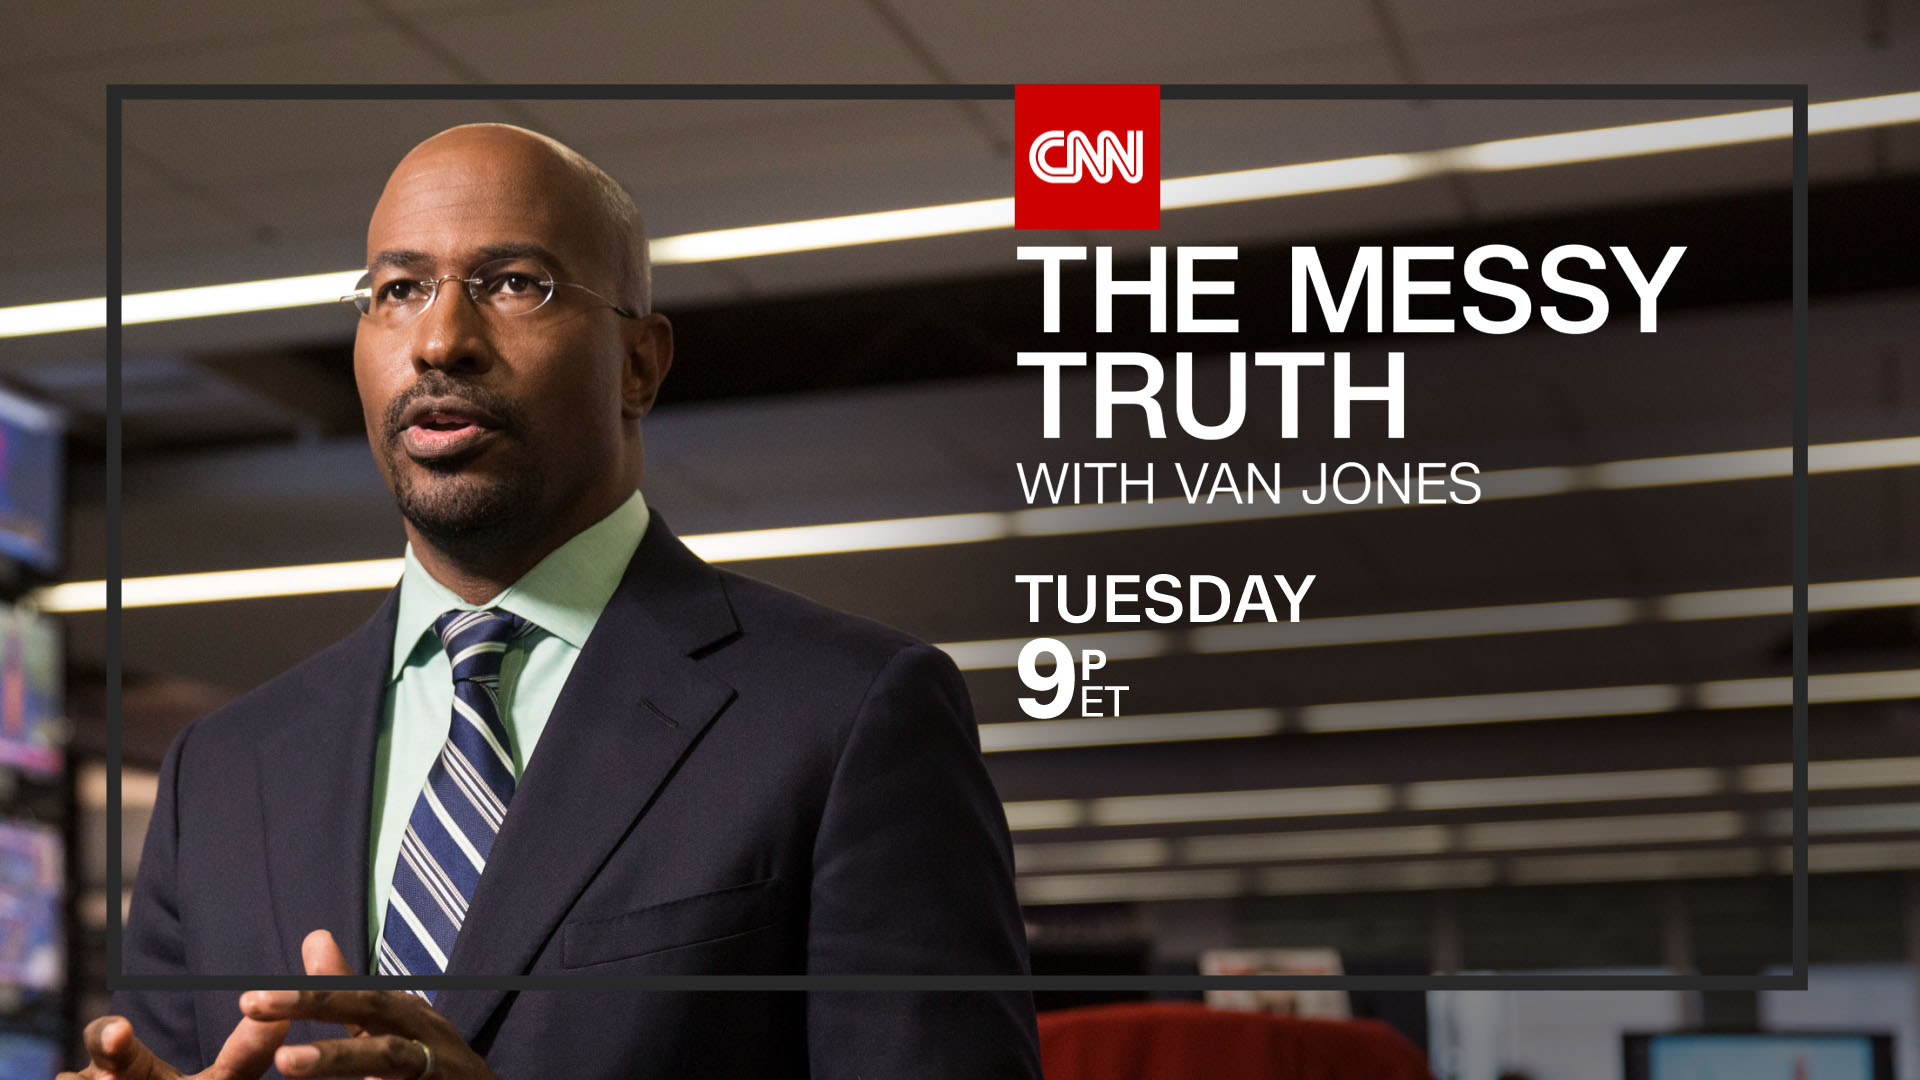 CNN to Air The Messy Truth Hosted by Van Jones on Tuesday, Dec. 6